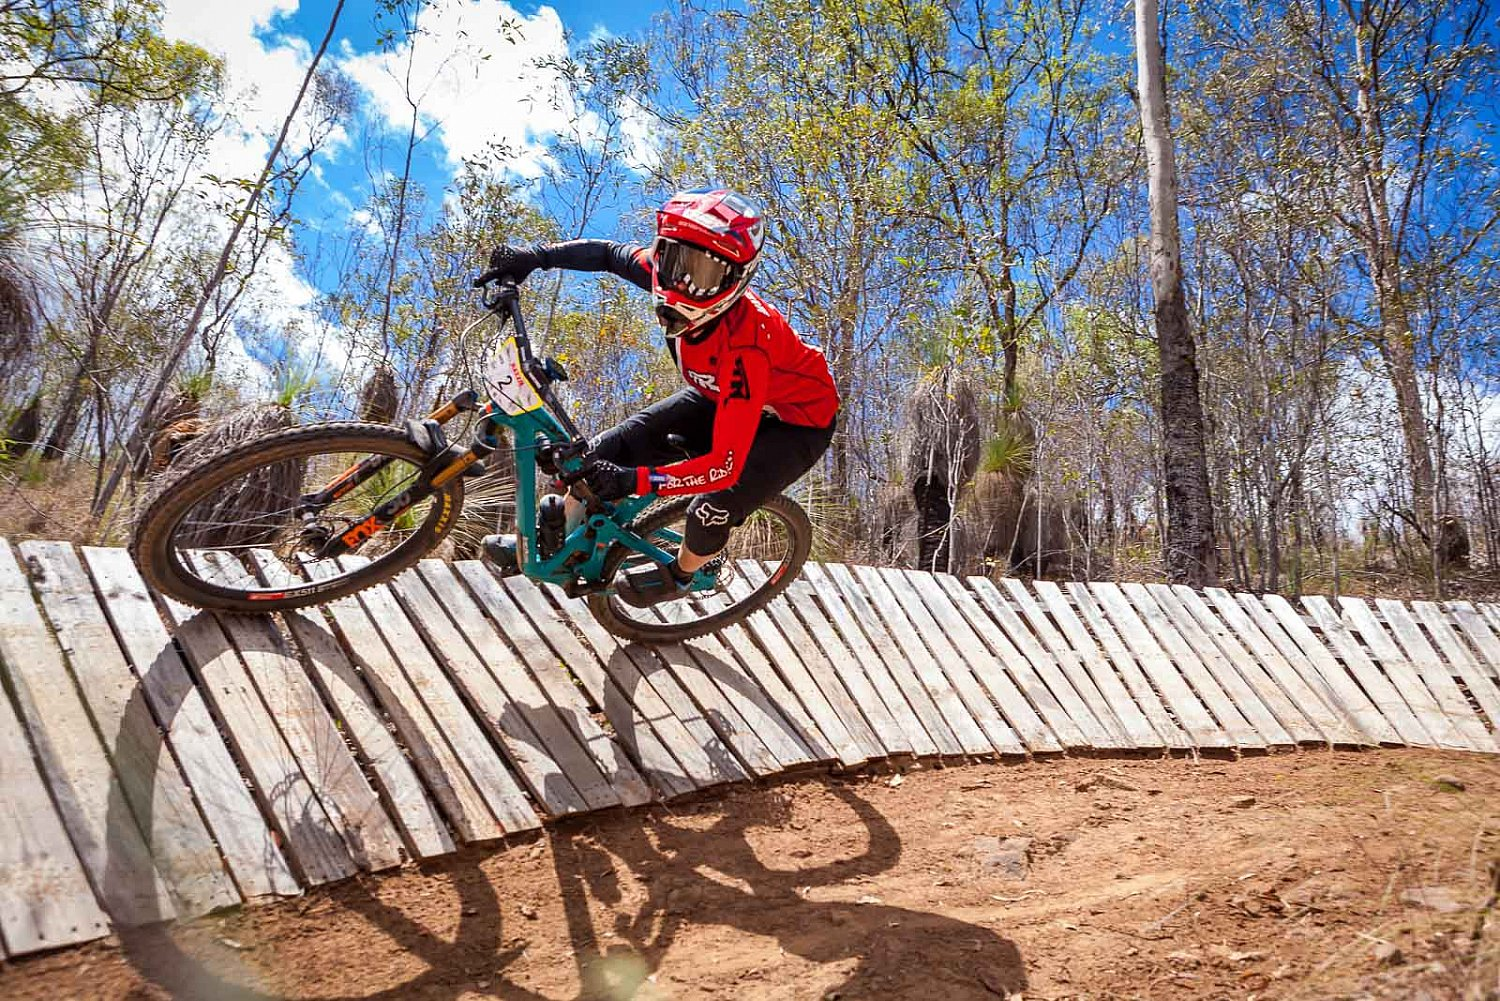 MTB Ride and Shoot Photography Workshop (1st March 2020) | ALW-4844_Andrew_Willis_13-10-2019.jpg